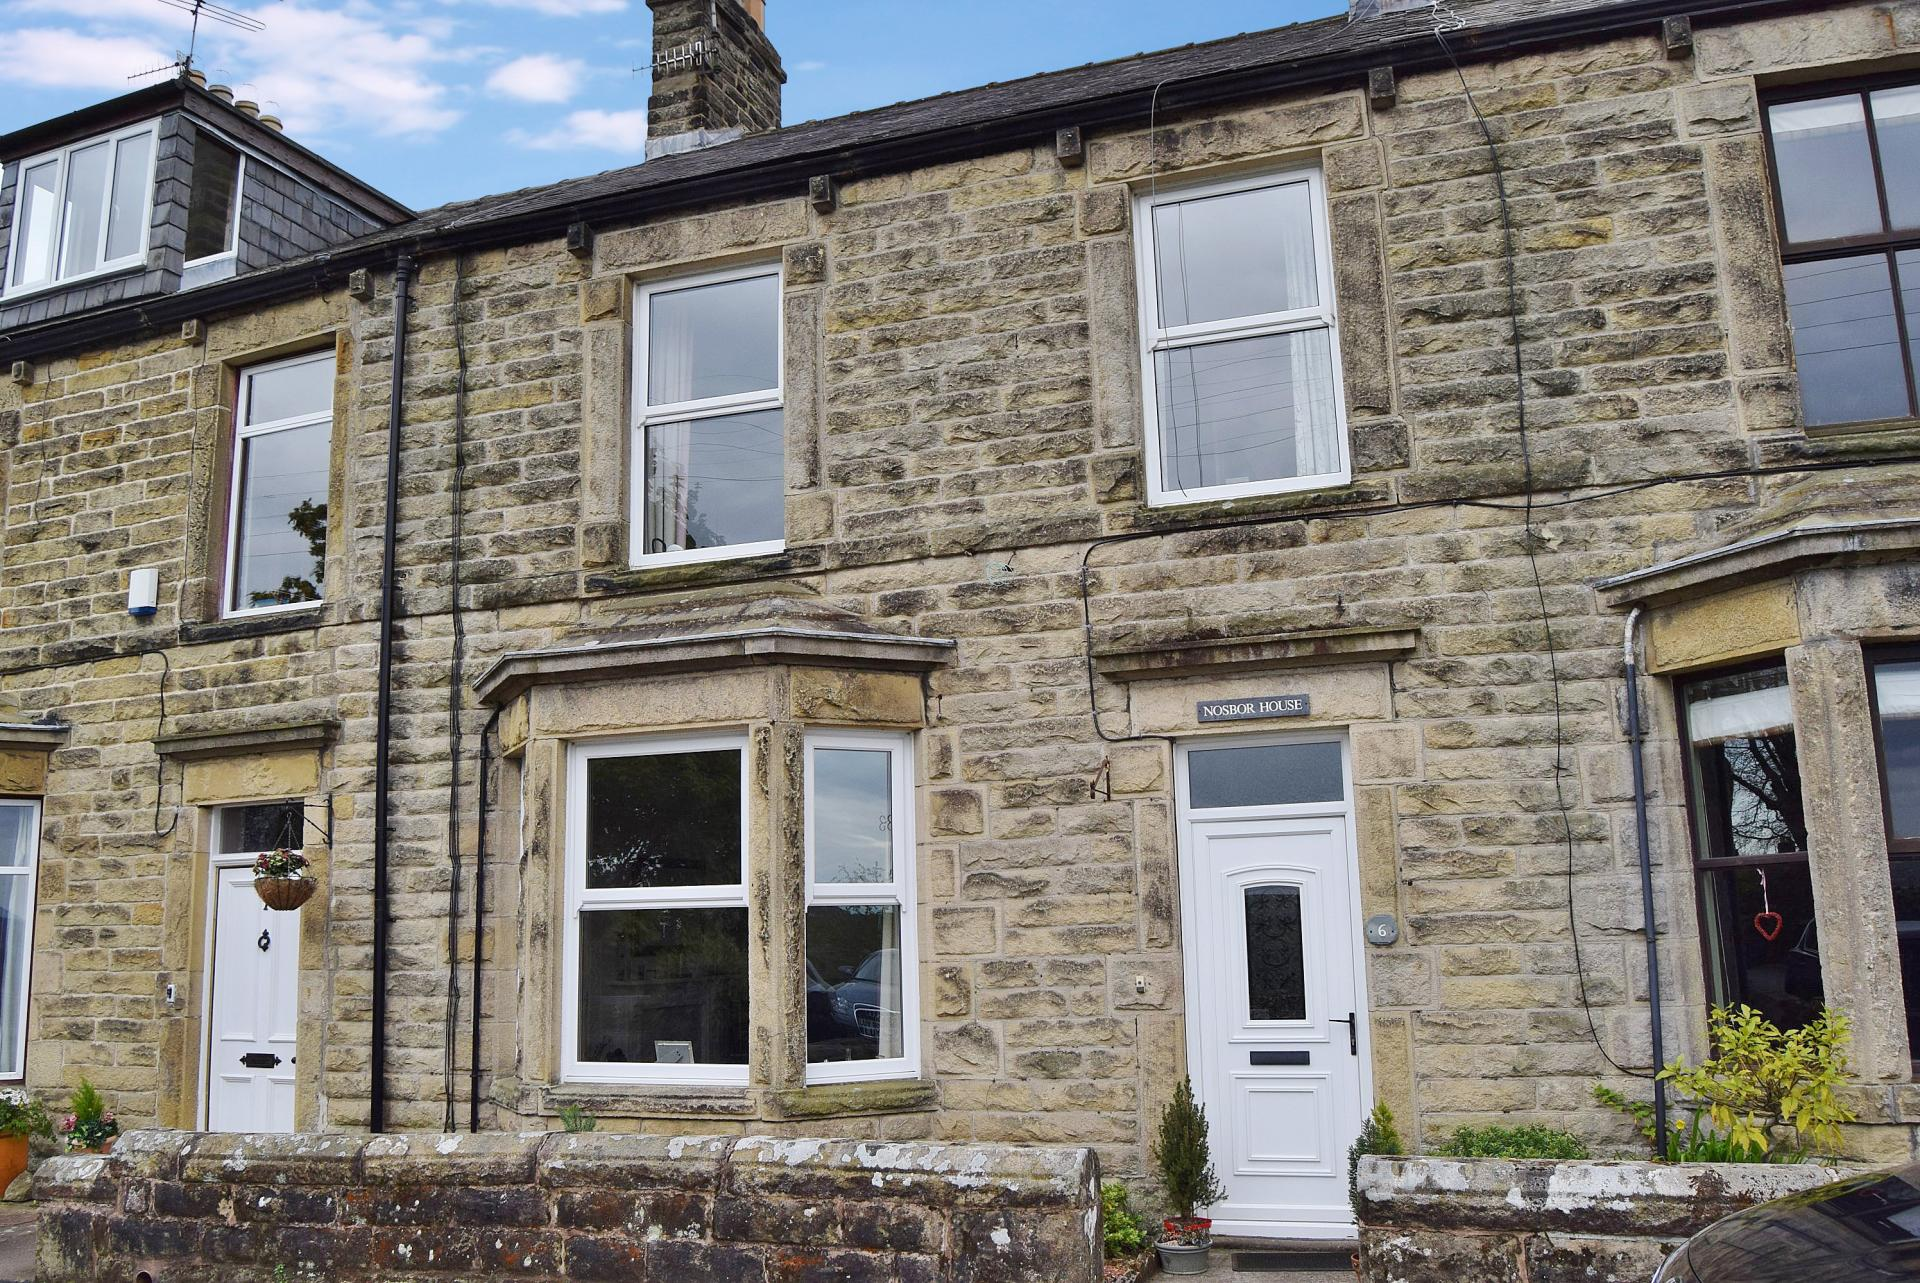 3 Bedrooms Terraced House for sale in Tyne View Terrace, Fellside